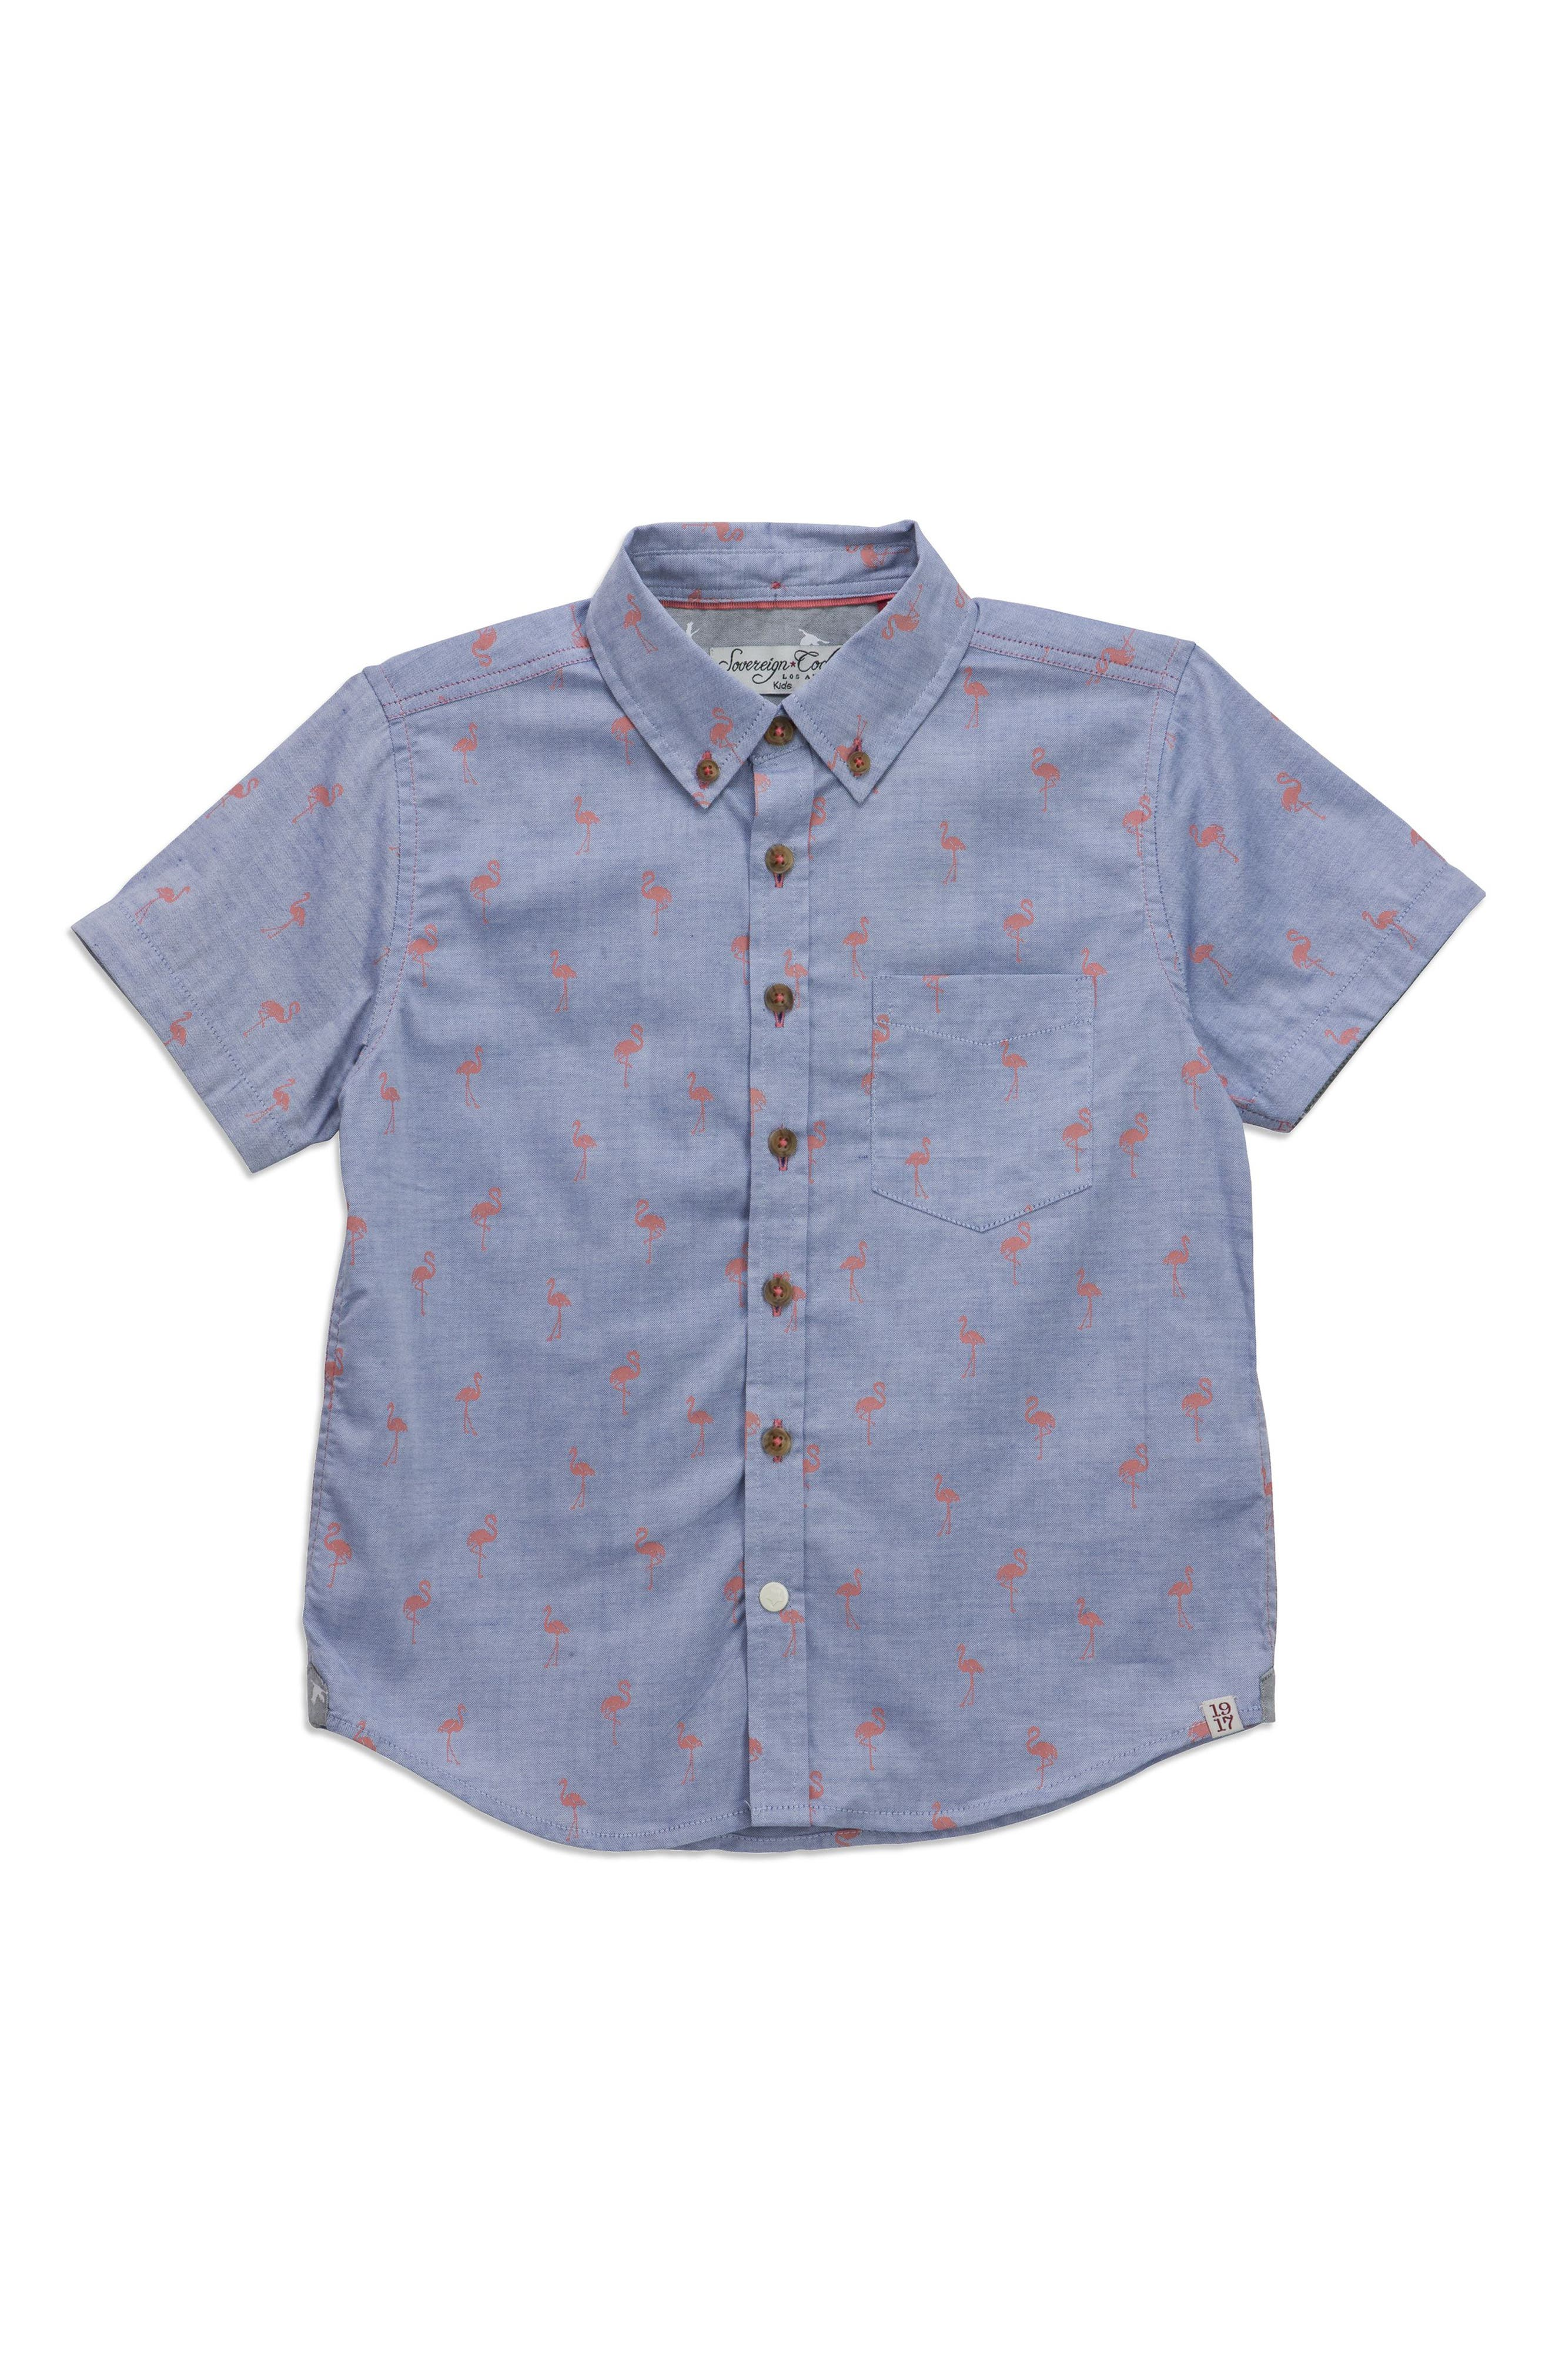 Alternate Image 1 Selected - Sovereign Code Crystal Cove Woven Shirt (Toddler Boys)